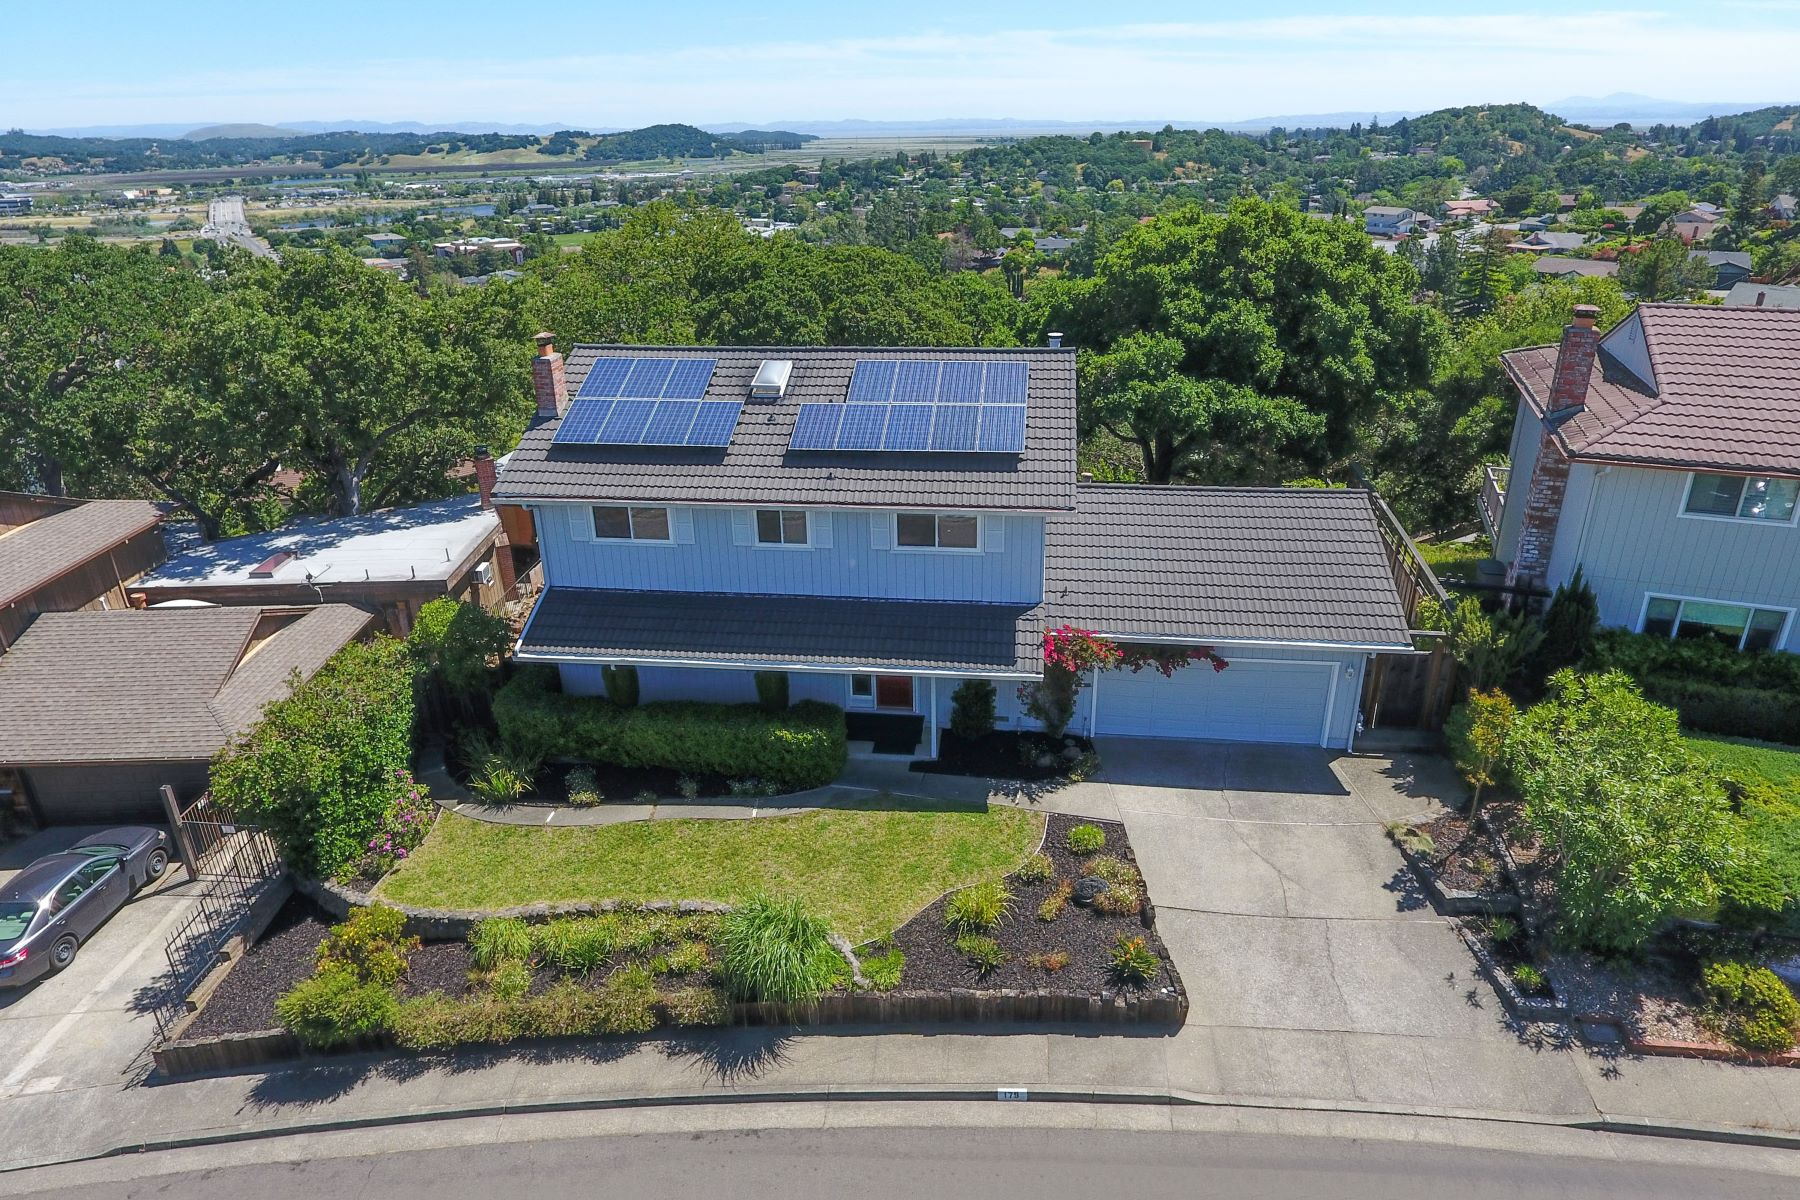 Single Family Home for Sale at Backyard Bliss in Southern Novato 179 Drakewood Place Novato, California 94947 United States